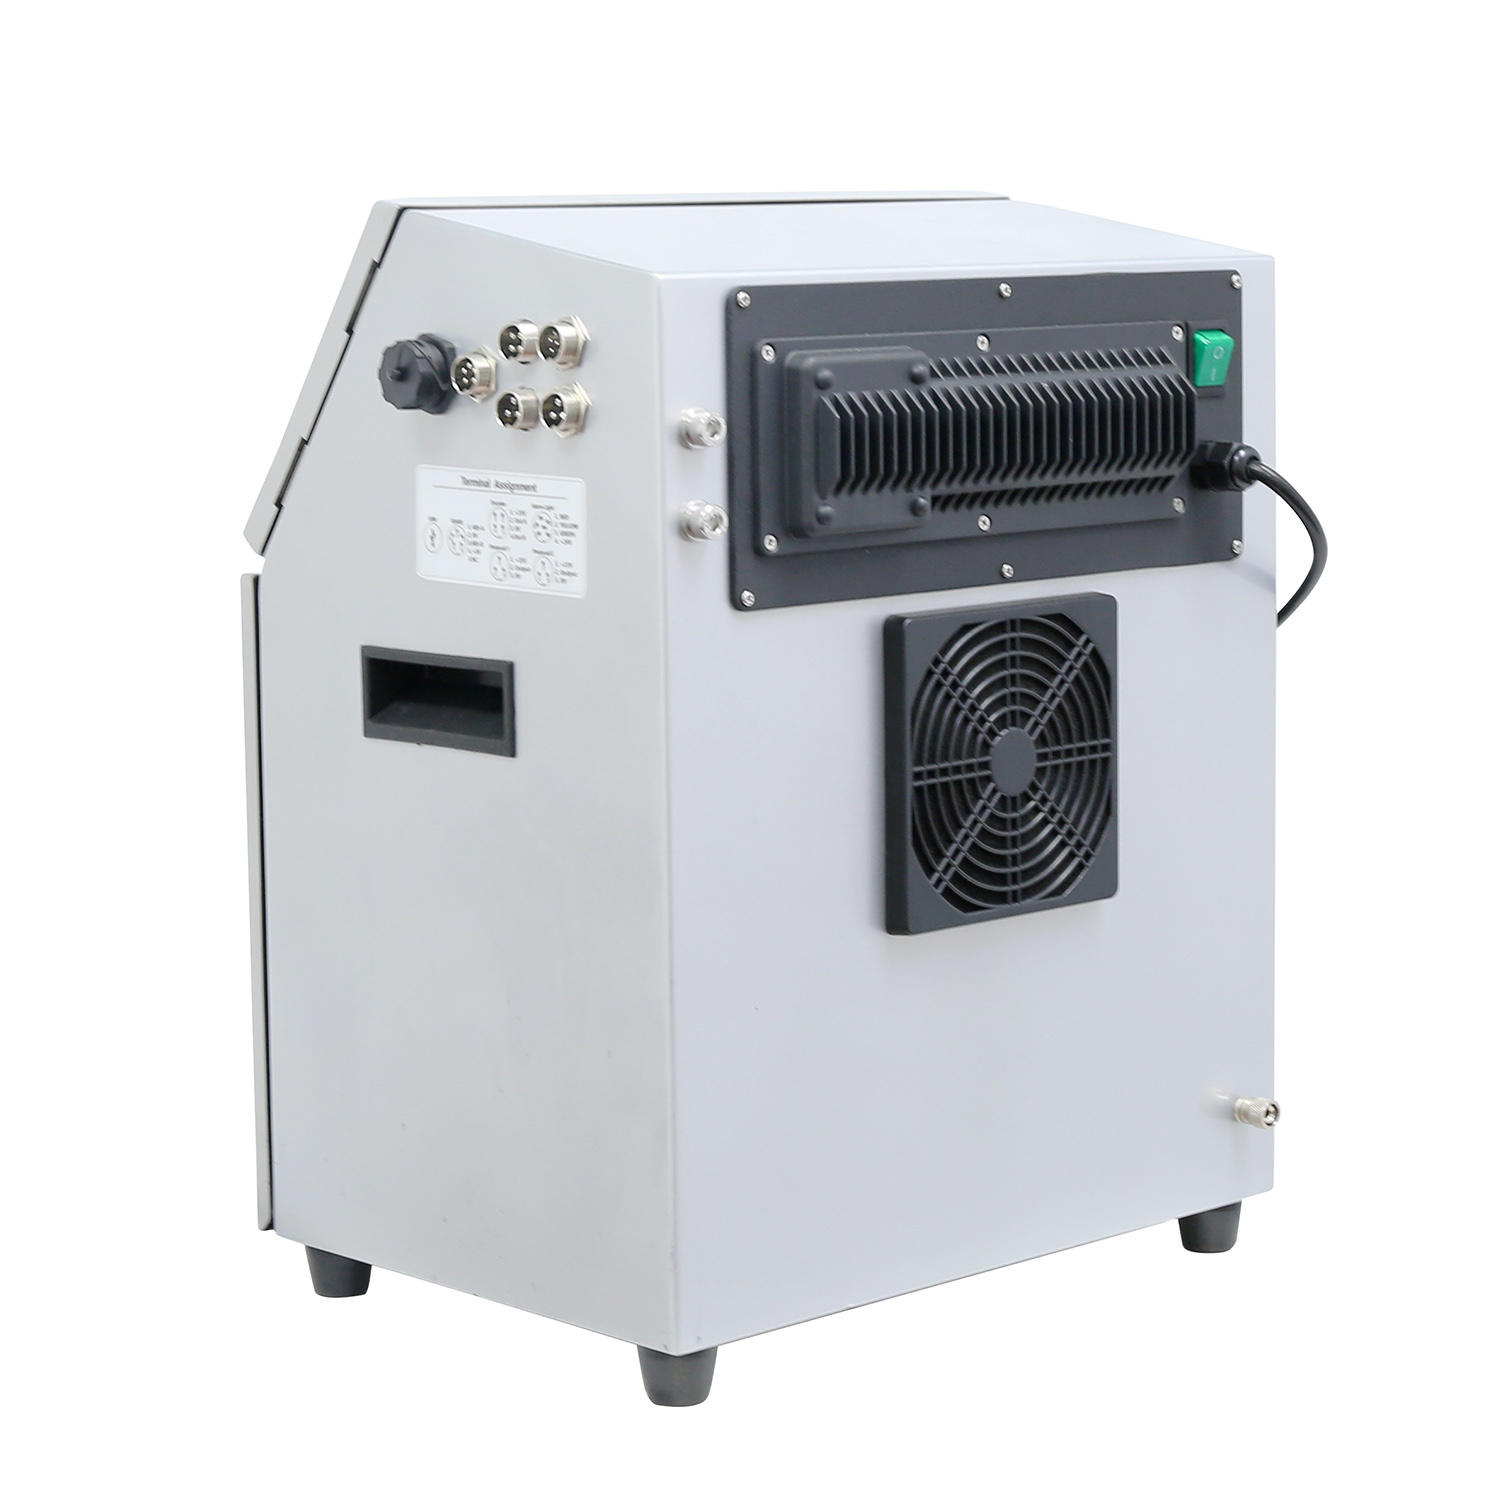 Leadtech Lt800 Printing Full Color on Carrier Bags Machine